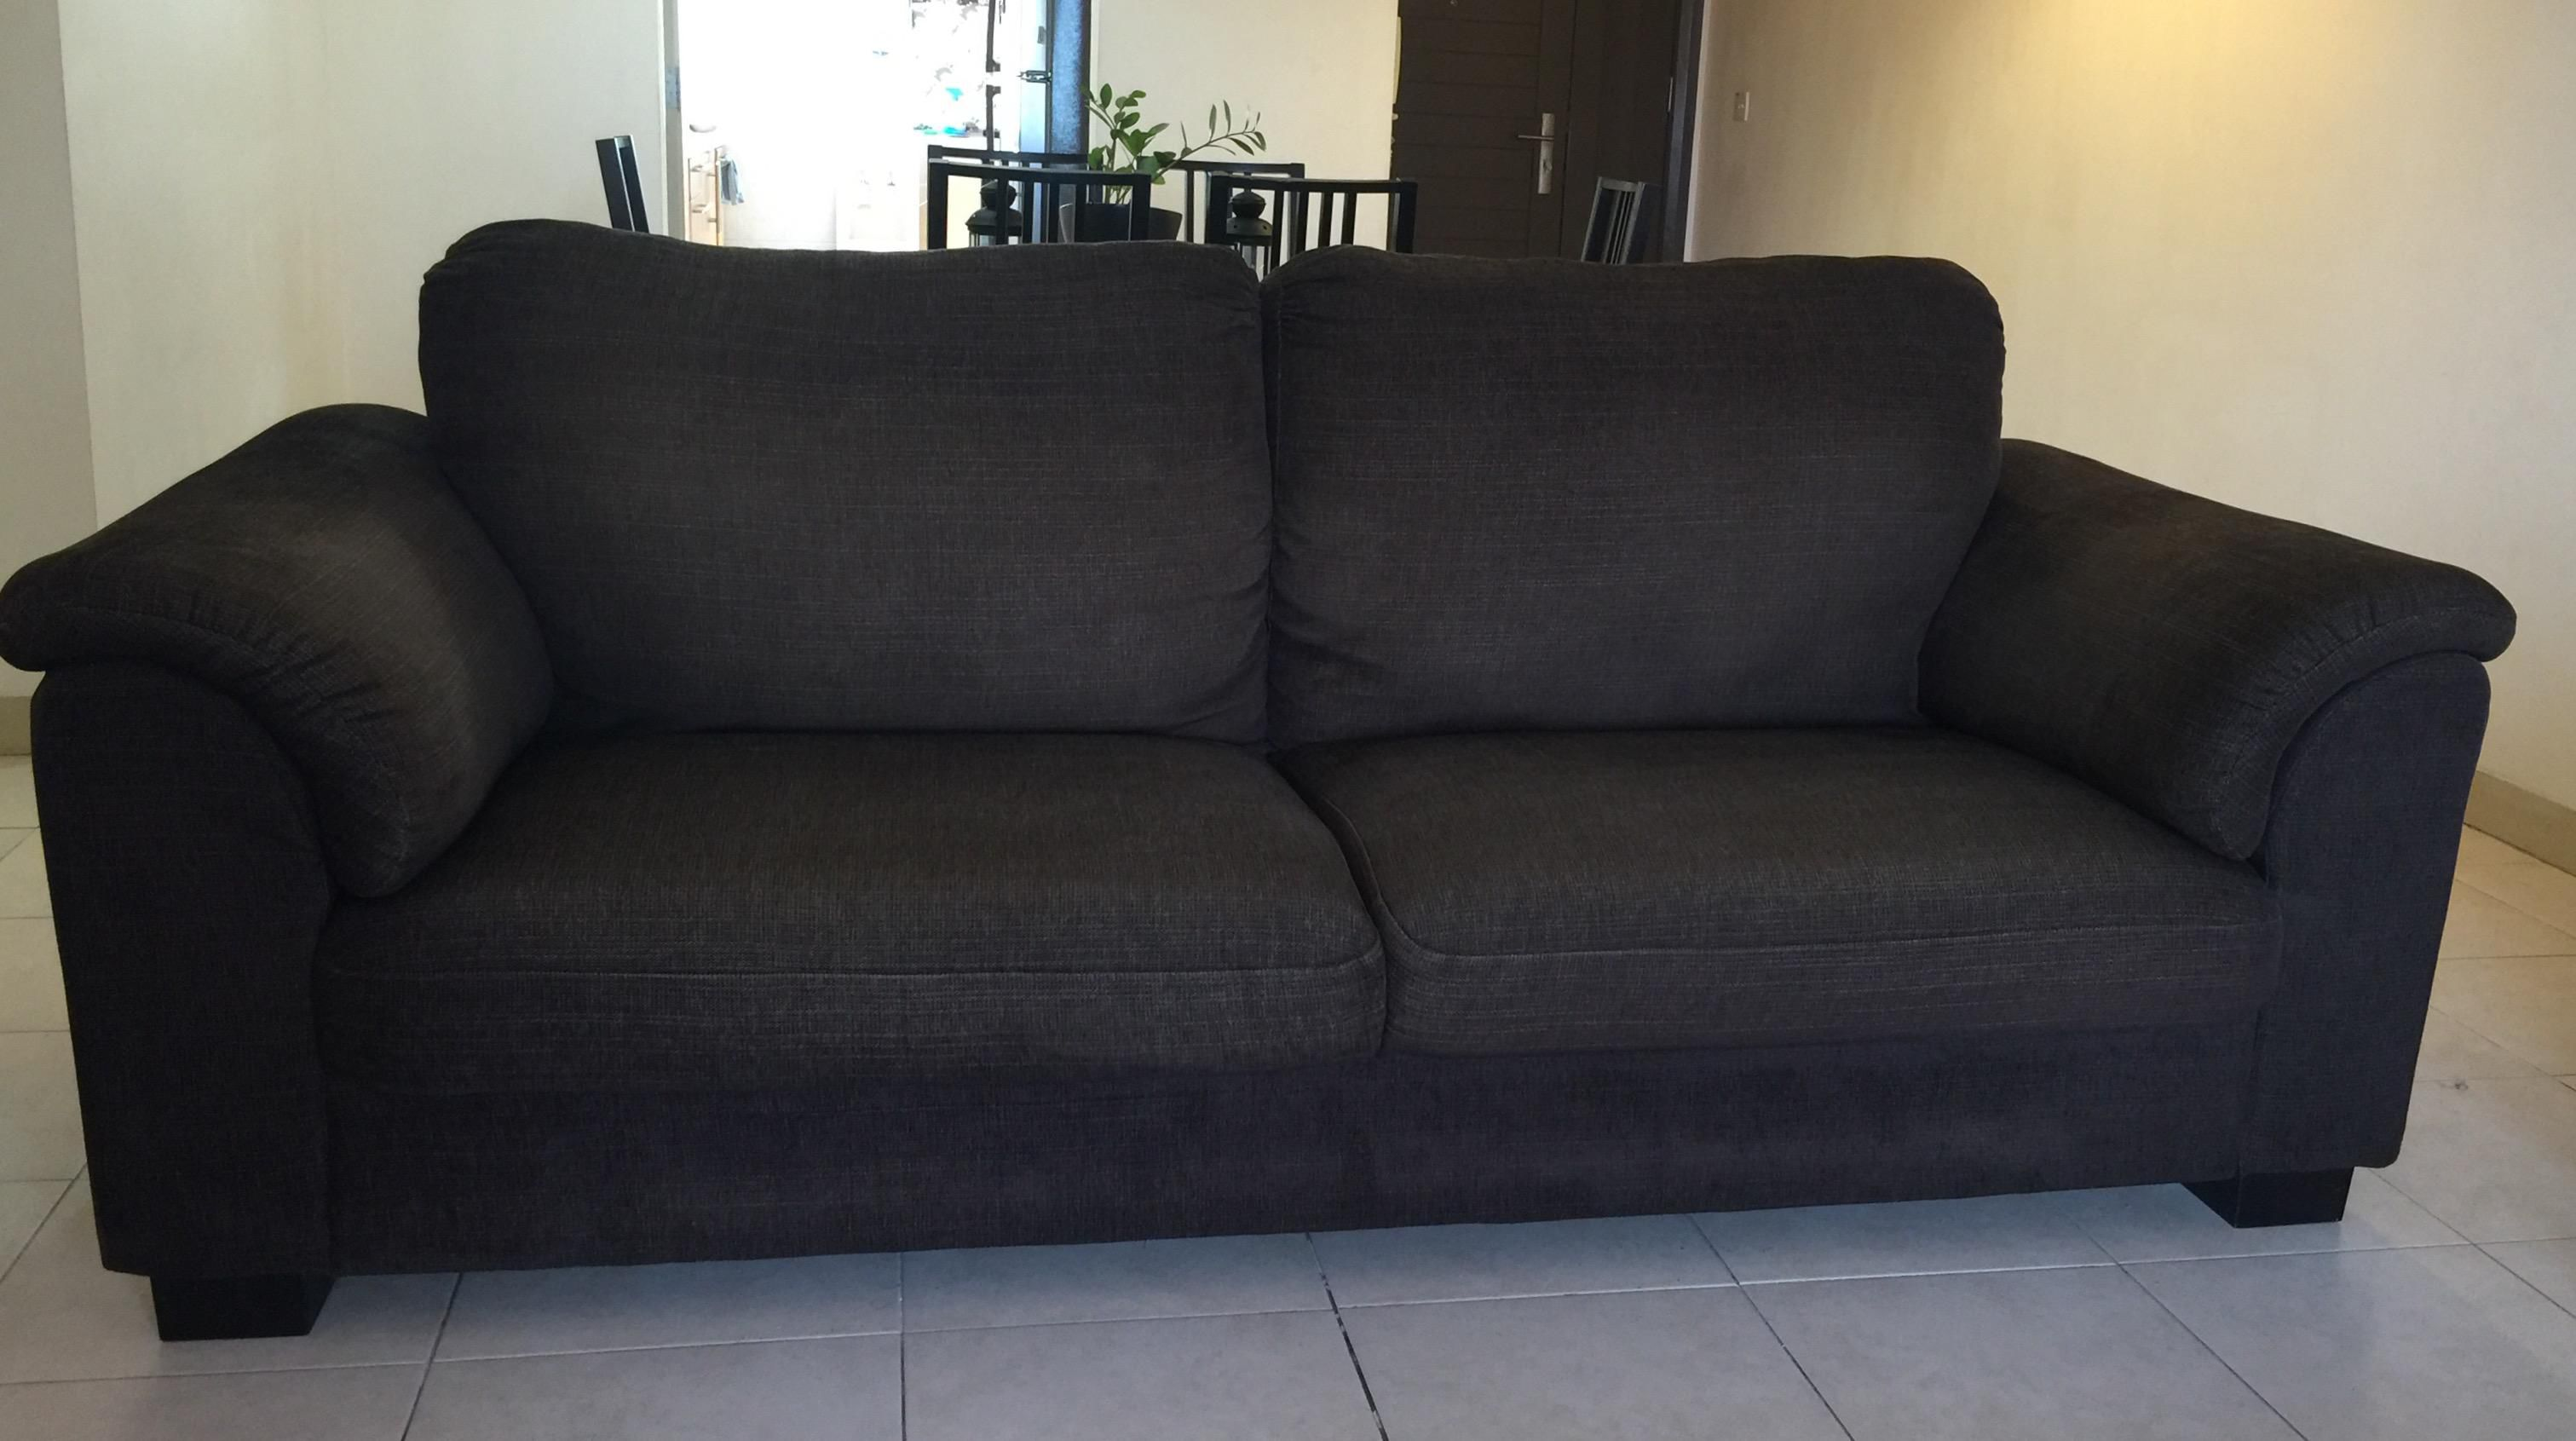 50 Off Ikea Fabric Sofa Secondhand My